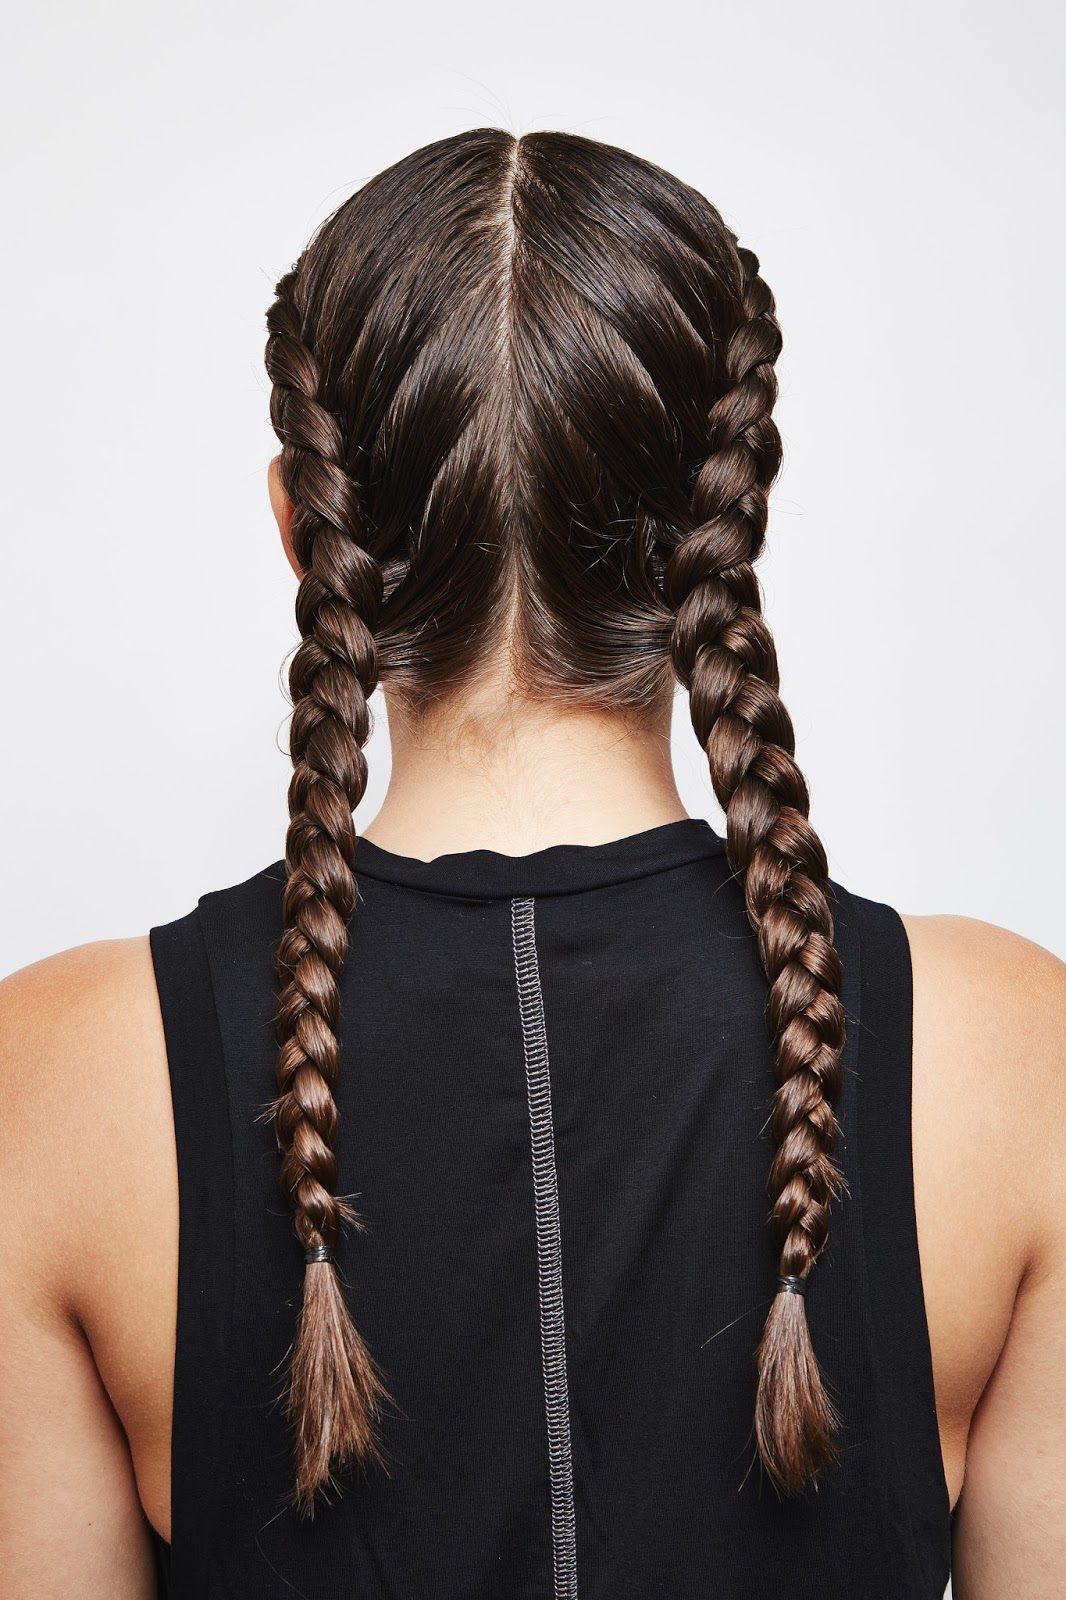 plaiting hair styles for hair 40 interesting plait hairstyles hairstylo 8045